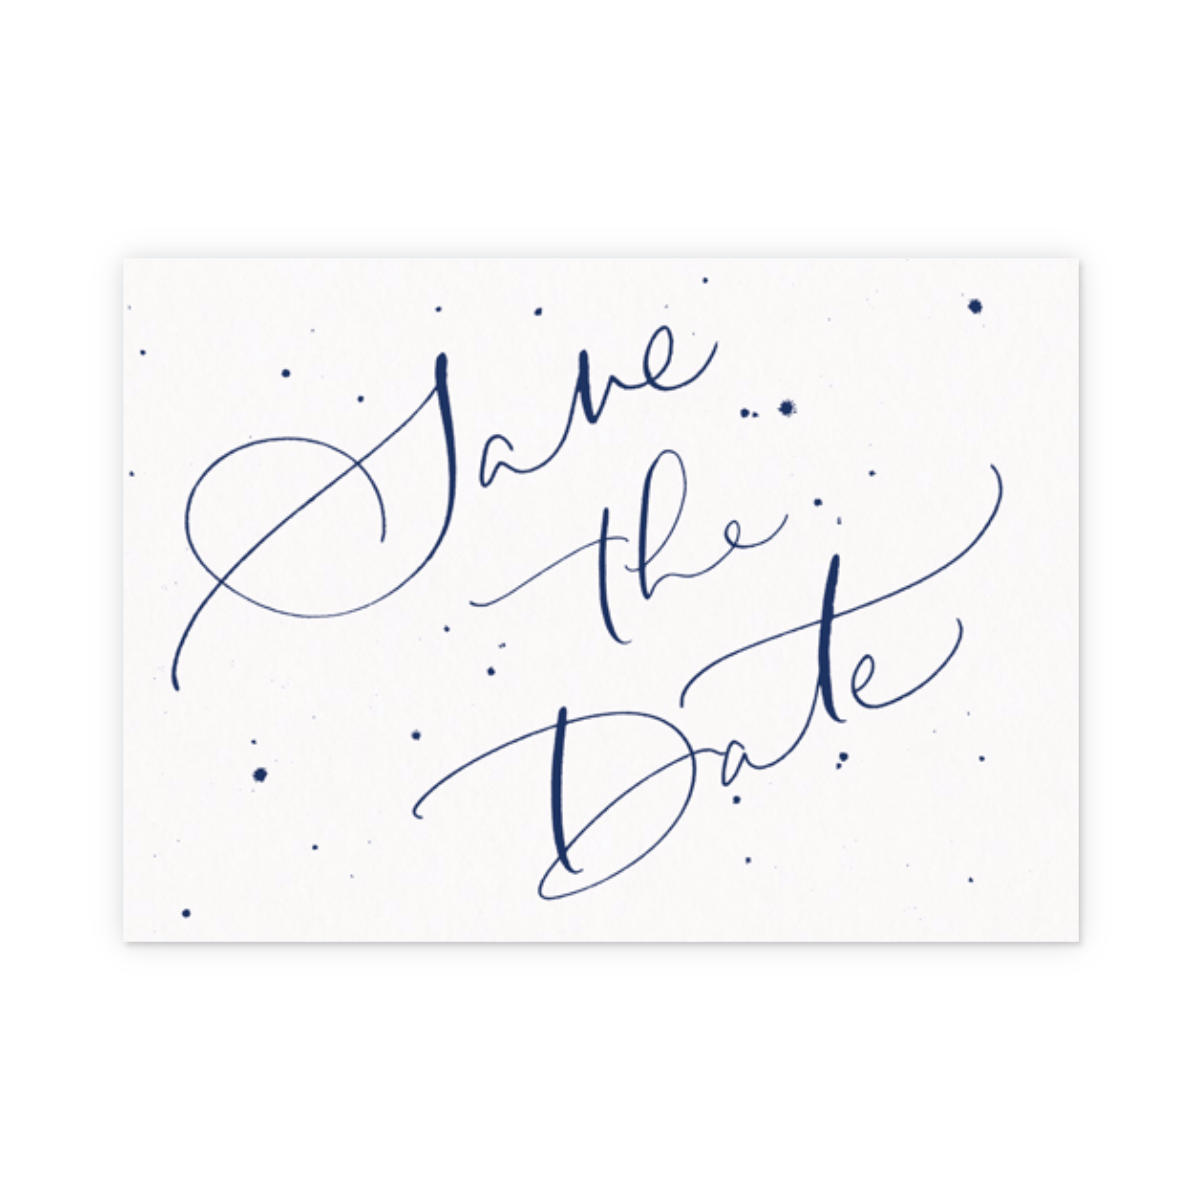 Https%3a%2f%2fwww.papier.com%2fproduct image%2f25841%2f10%2fsave the date speckle navy 6451 avant 1500552721.png?ixlib=rb 1.1